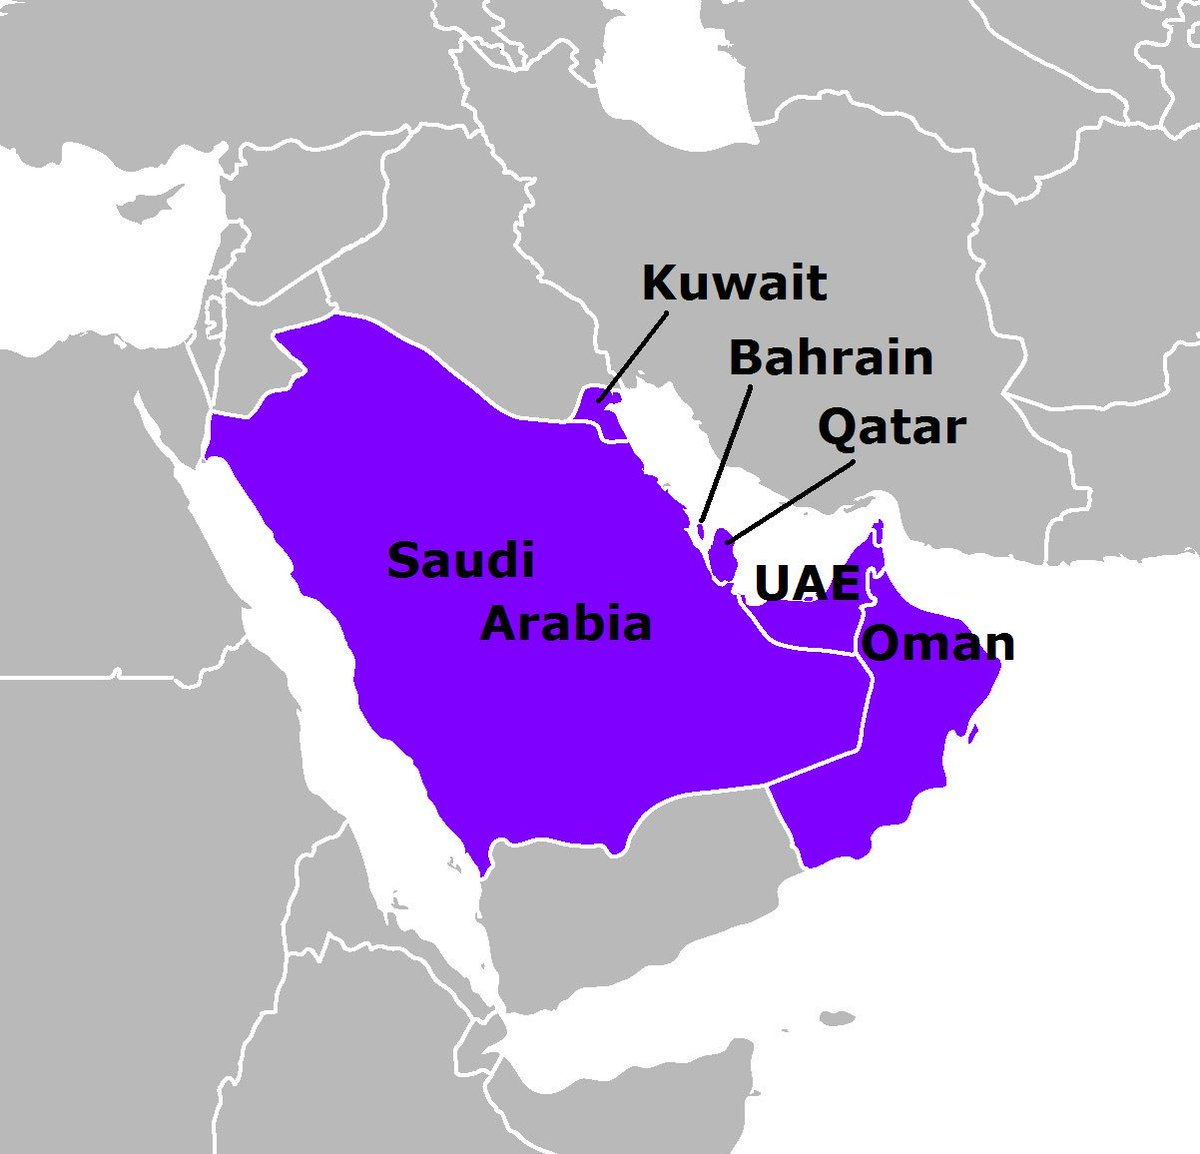 With GCC divided. It is more vulnerable to terrorist attacks. More precautions required in the coming months. #terrorism #GCC<br>http://pic.twitter.com/JoU7ZEWD47